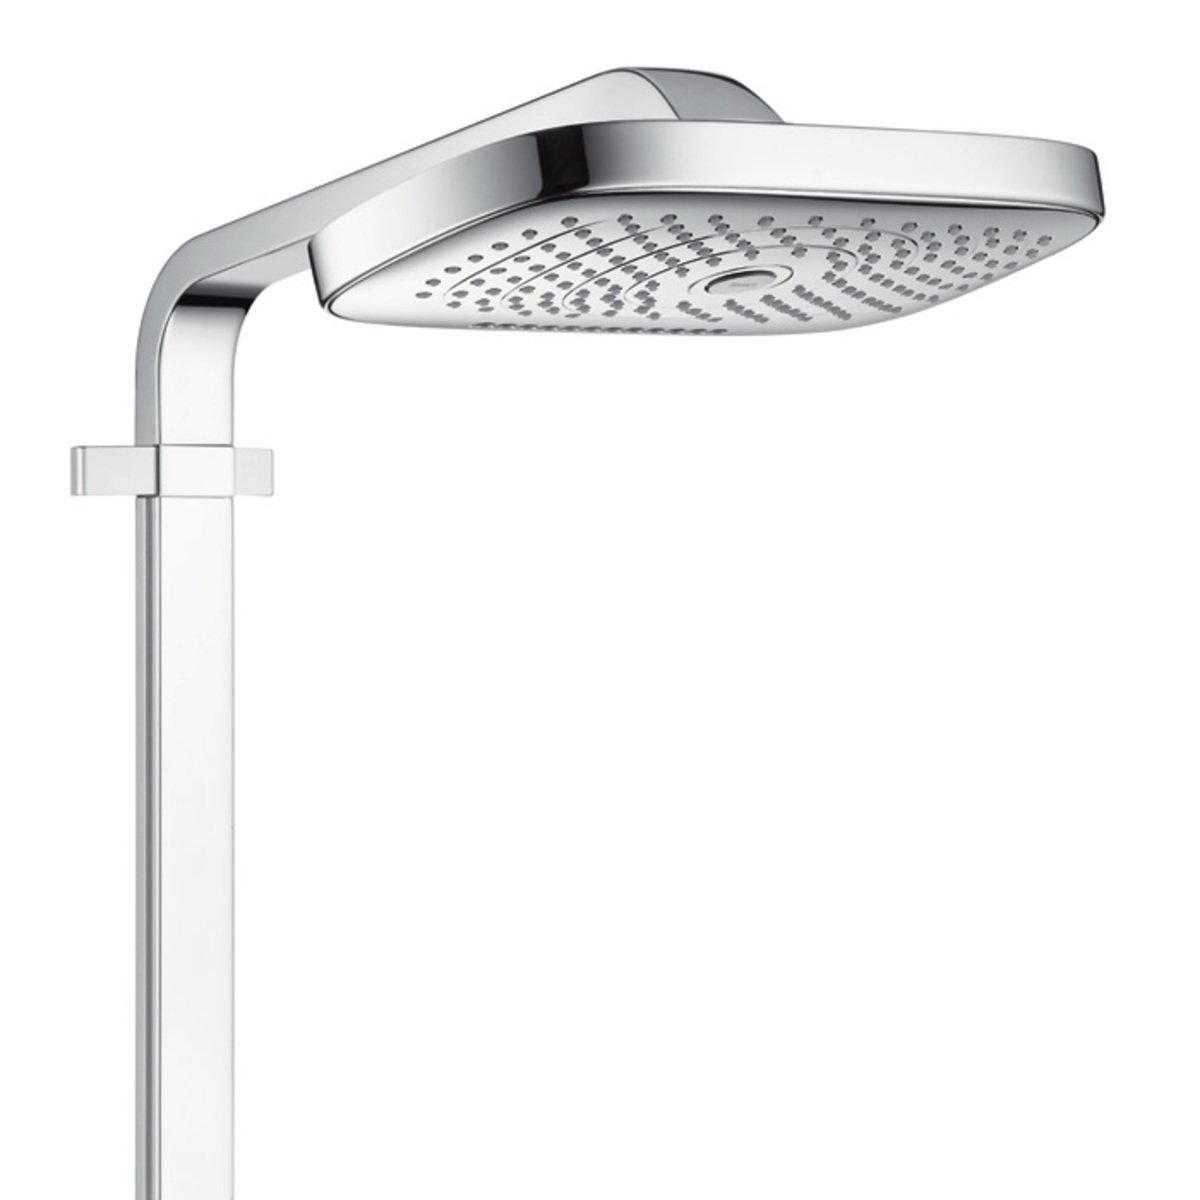 hansgrohe raindance select e300 colonne de douche avec showertablet 300 robinet mural. Black Bedroom Furniture Sets. Home Design Ideas